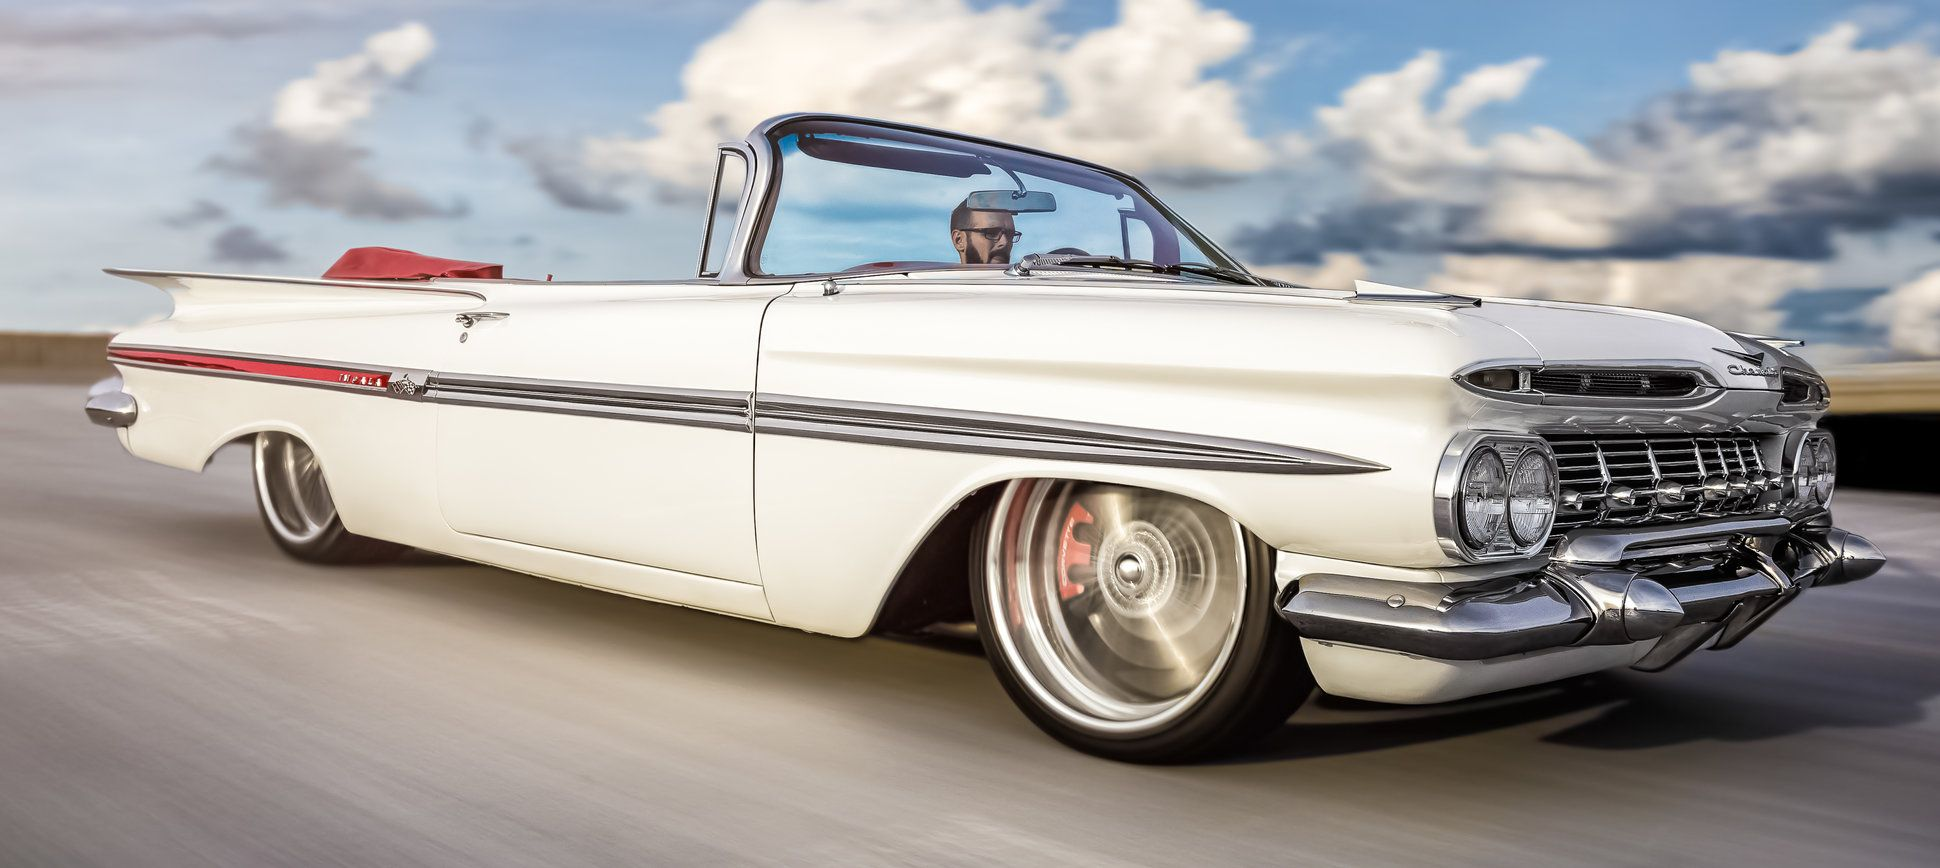 Wonderful Ebay Motors Collector Cars For Sale Images - Classic ...